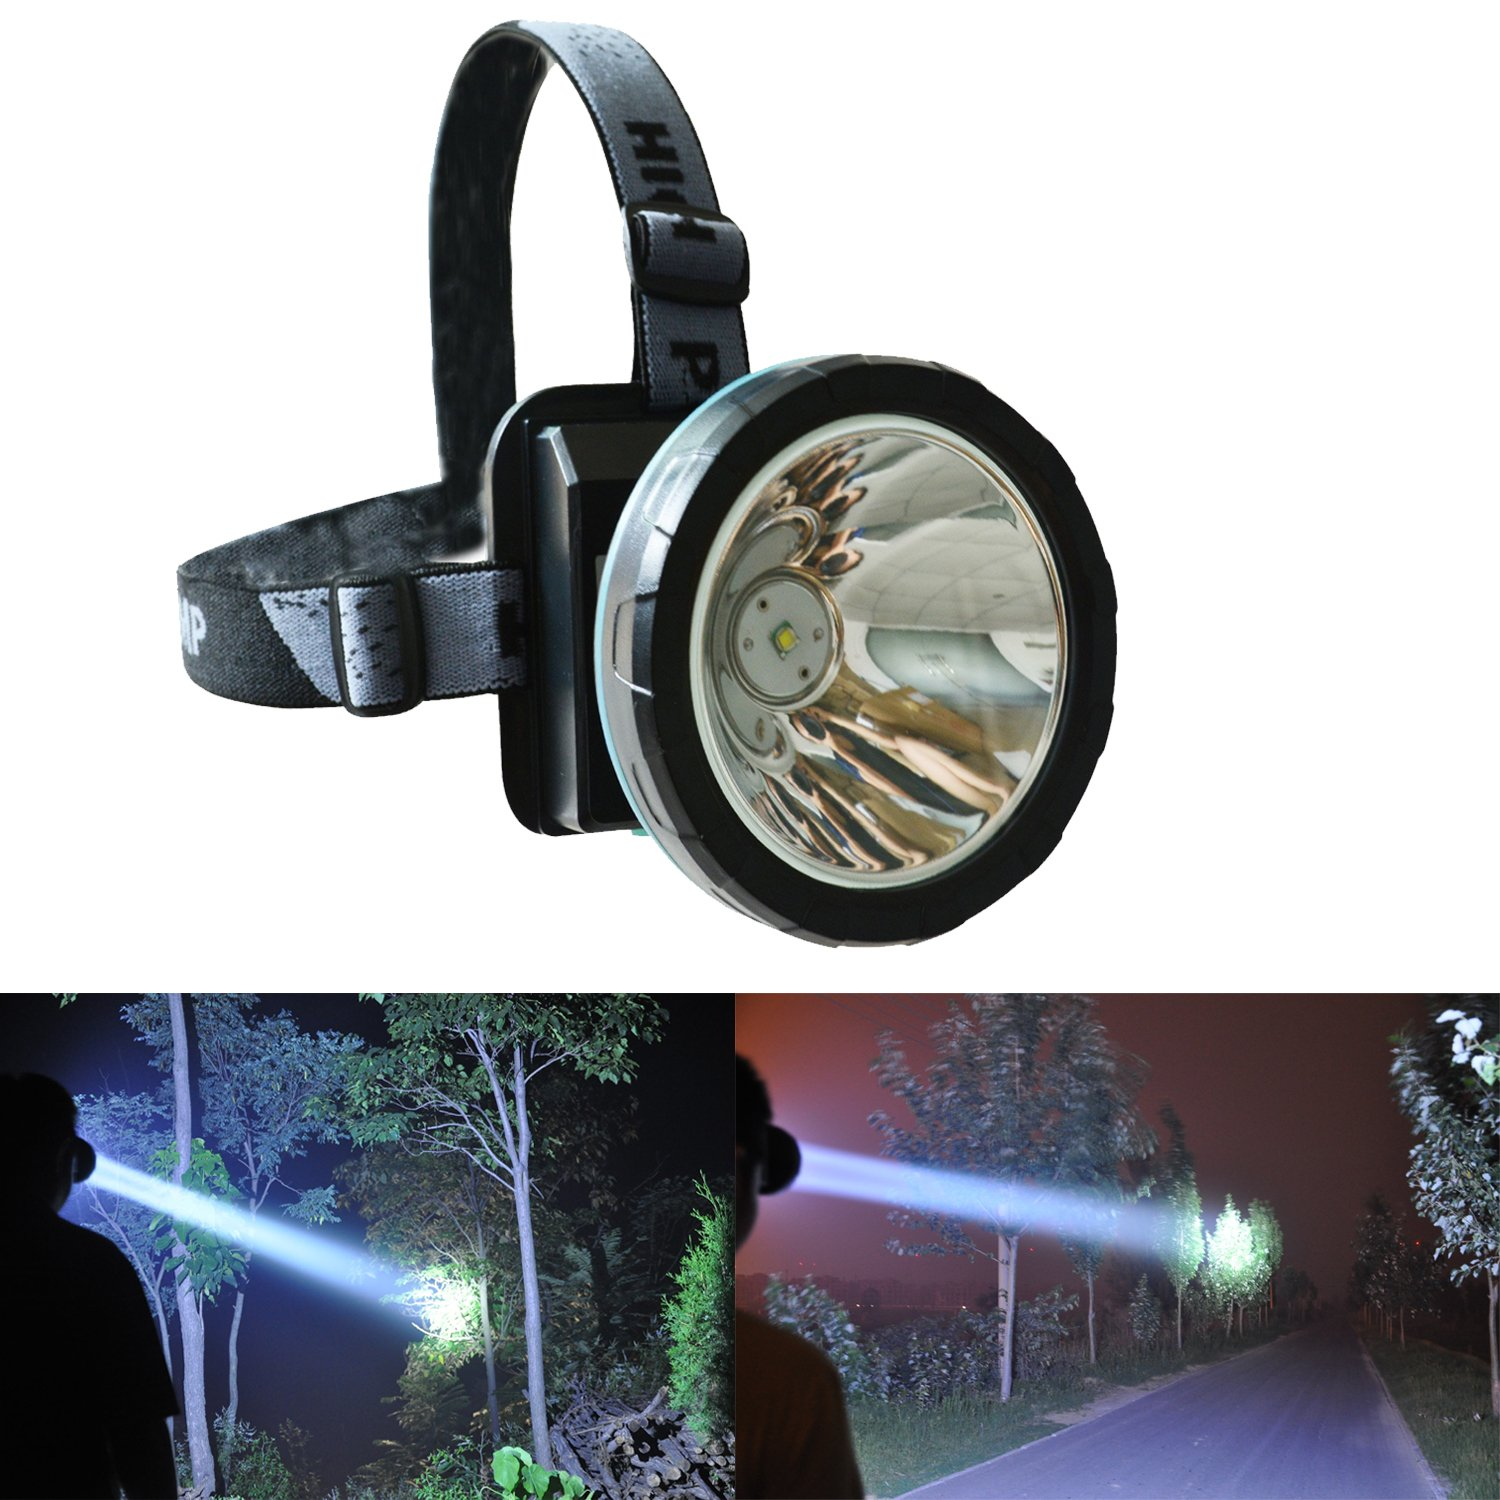 odear lie wang headlamp rechargeable led flashlight for mining